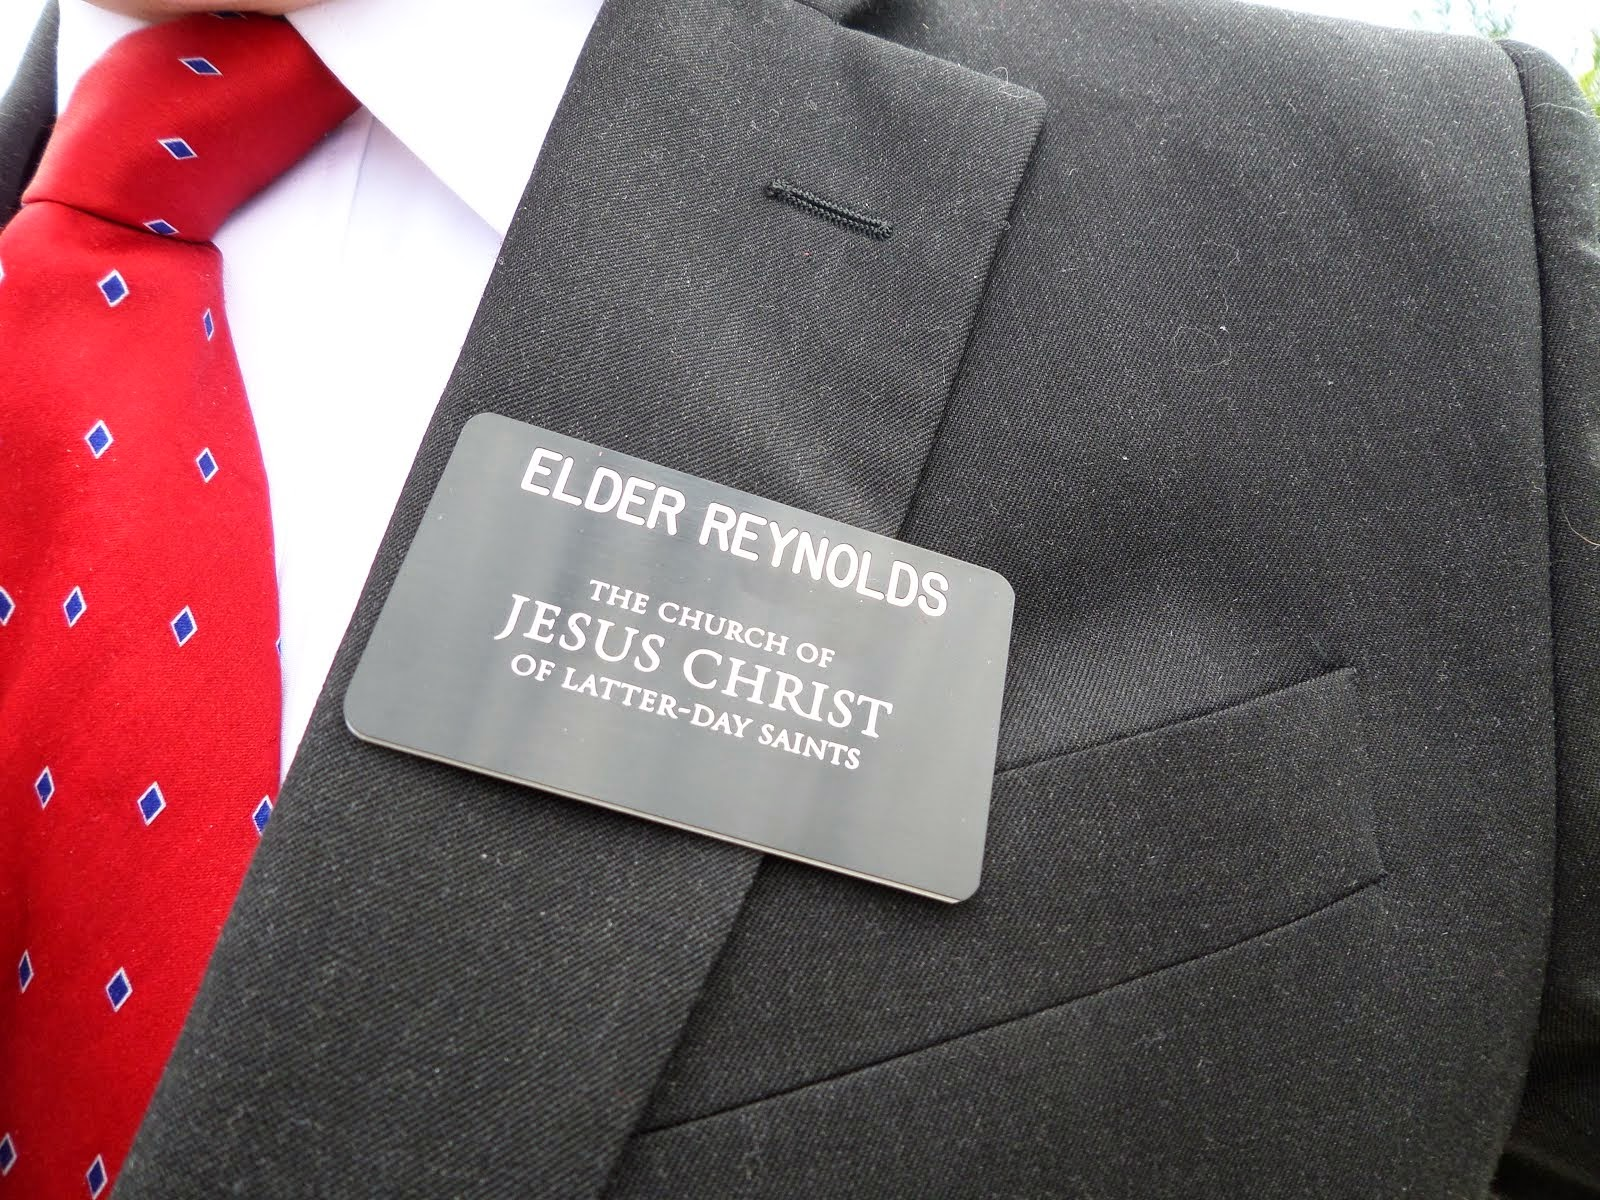 Elder Reynolds Nametag